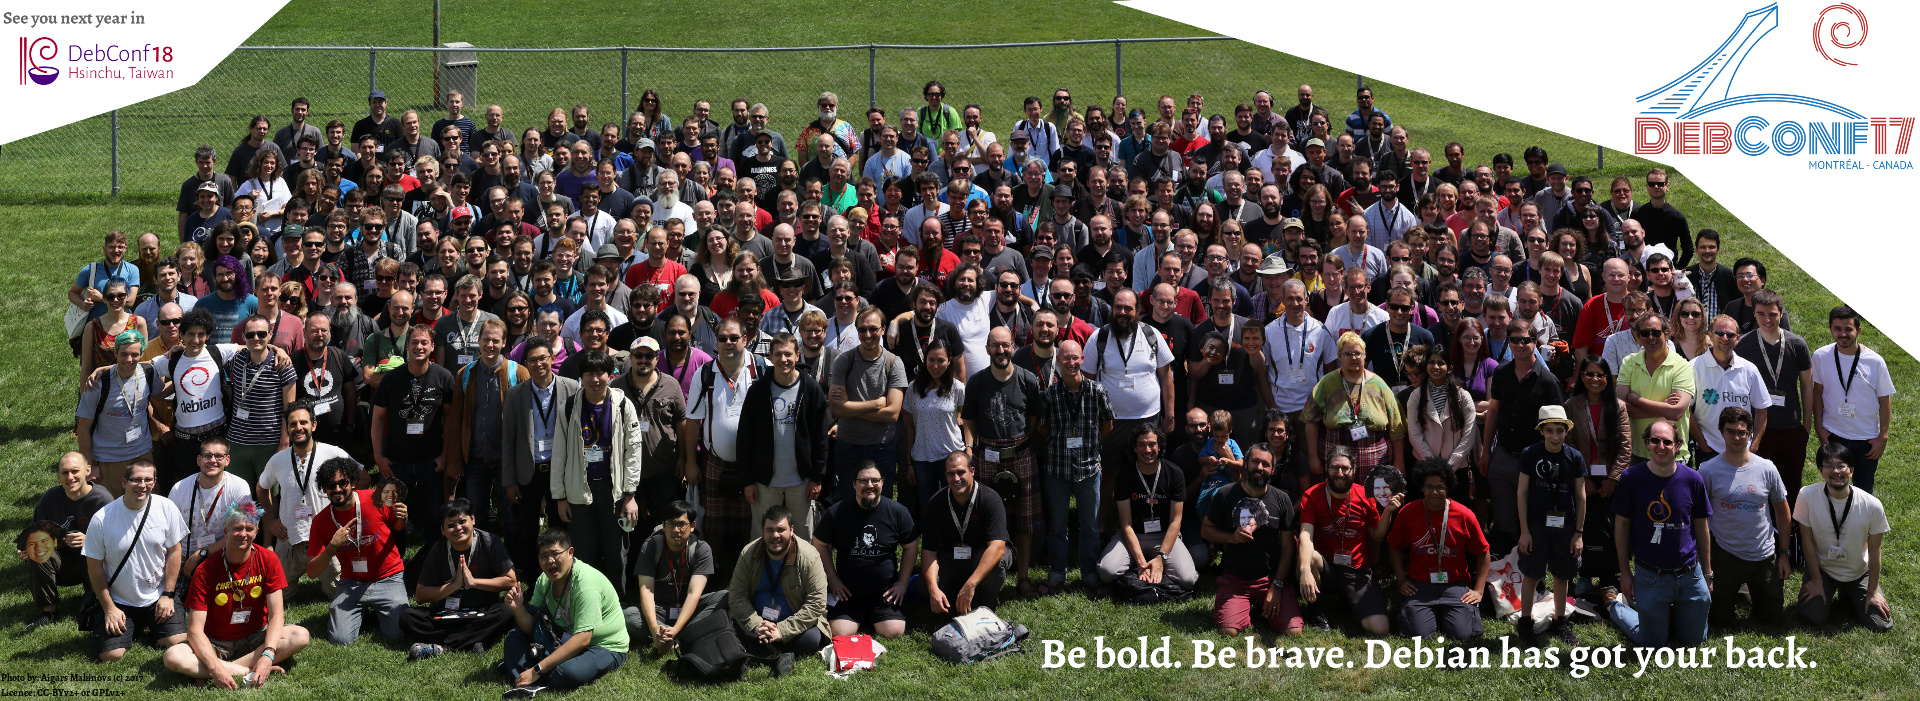 DebConf17 group photo - click to enlarge